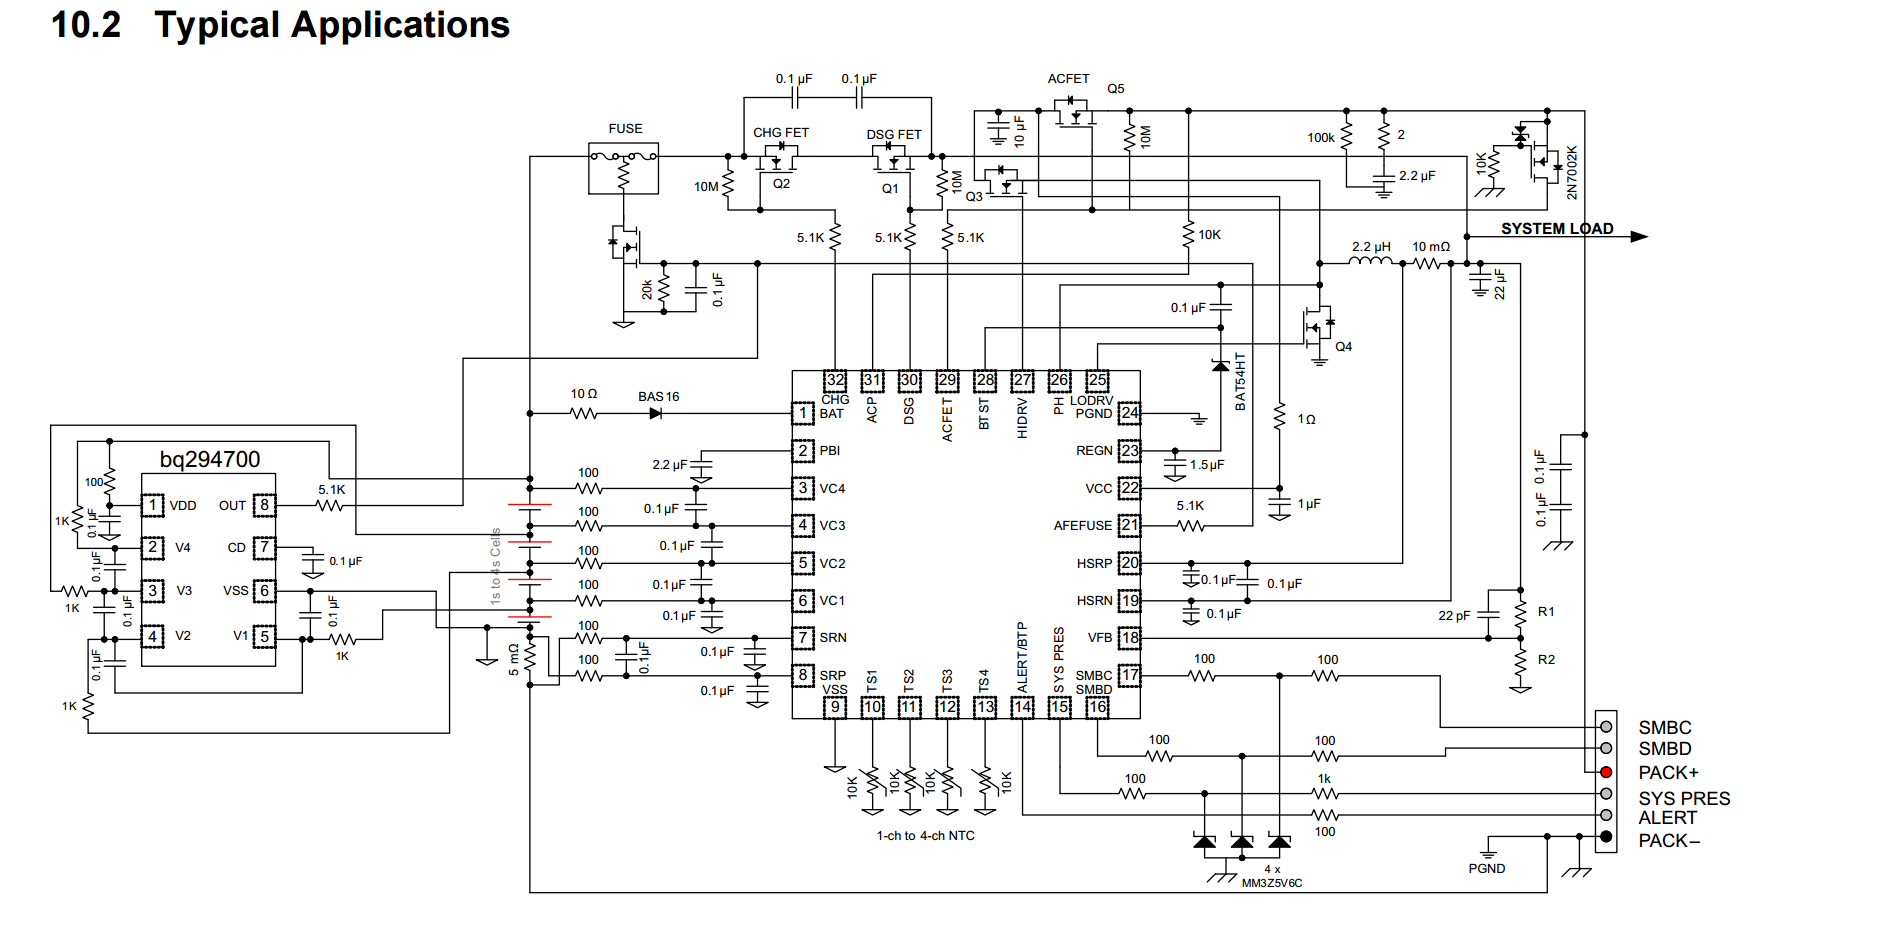 Ece477 Course Documents Arm Cortex Besides Fuse Box Diagram On Gas Detector Block The Typical Applications Circuit Found In Bmu Datasheet This Was Main Reference For Circuits Schematic Above